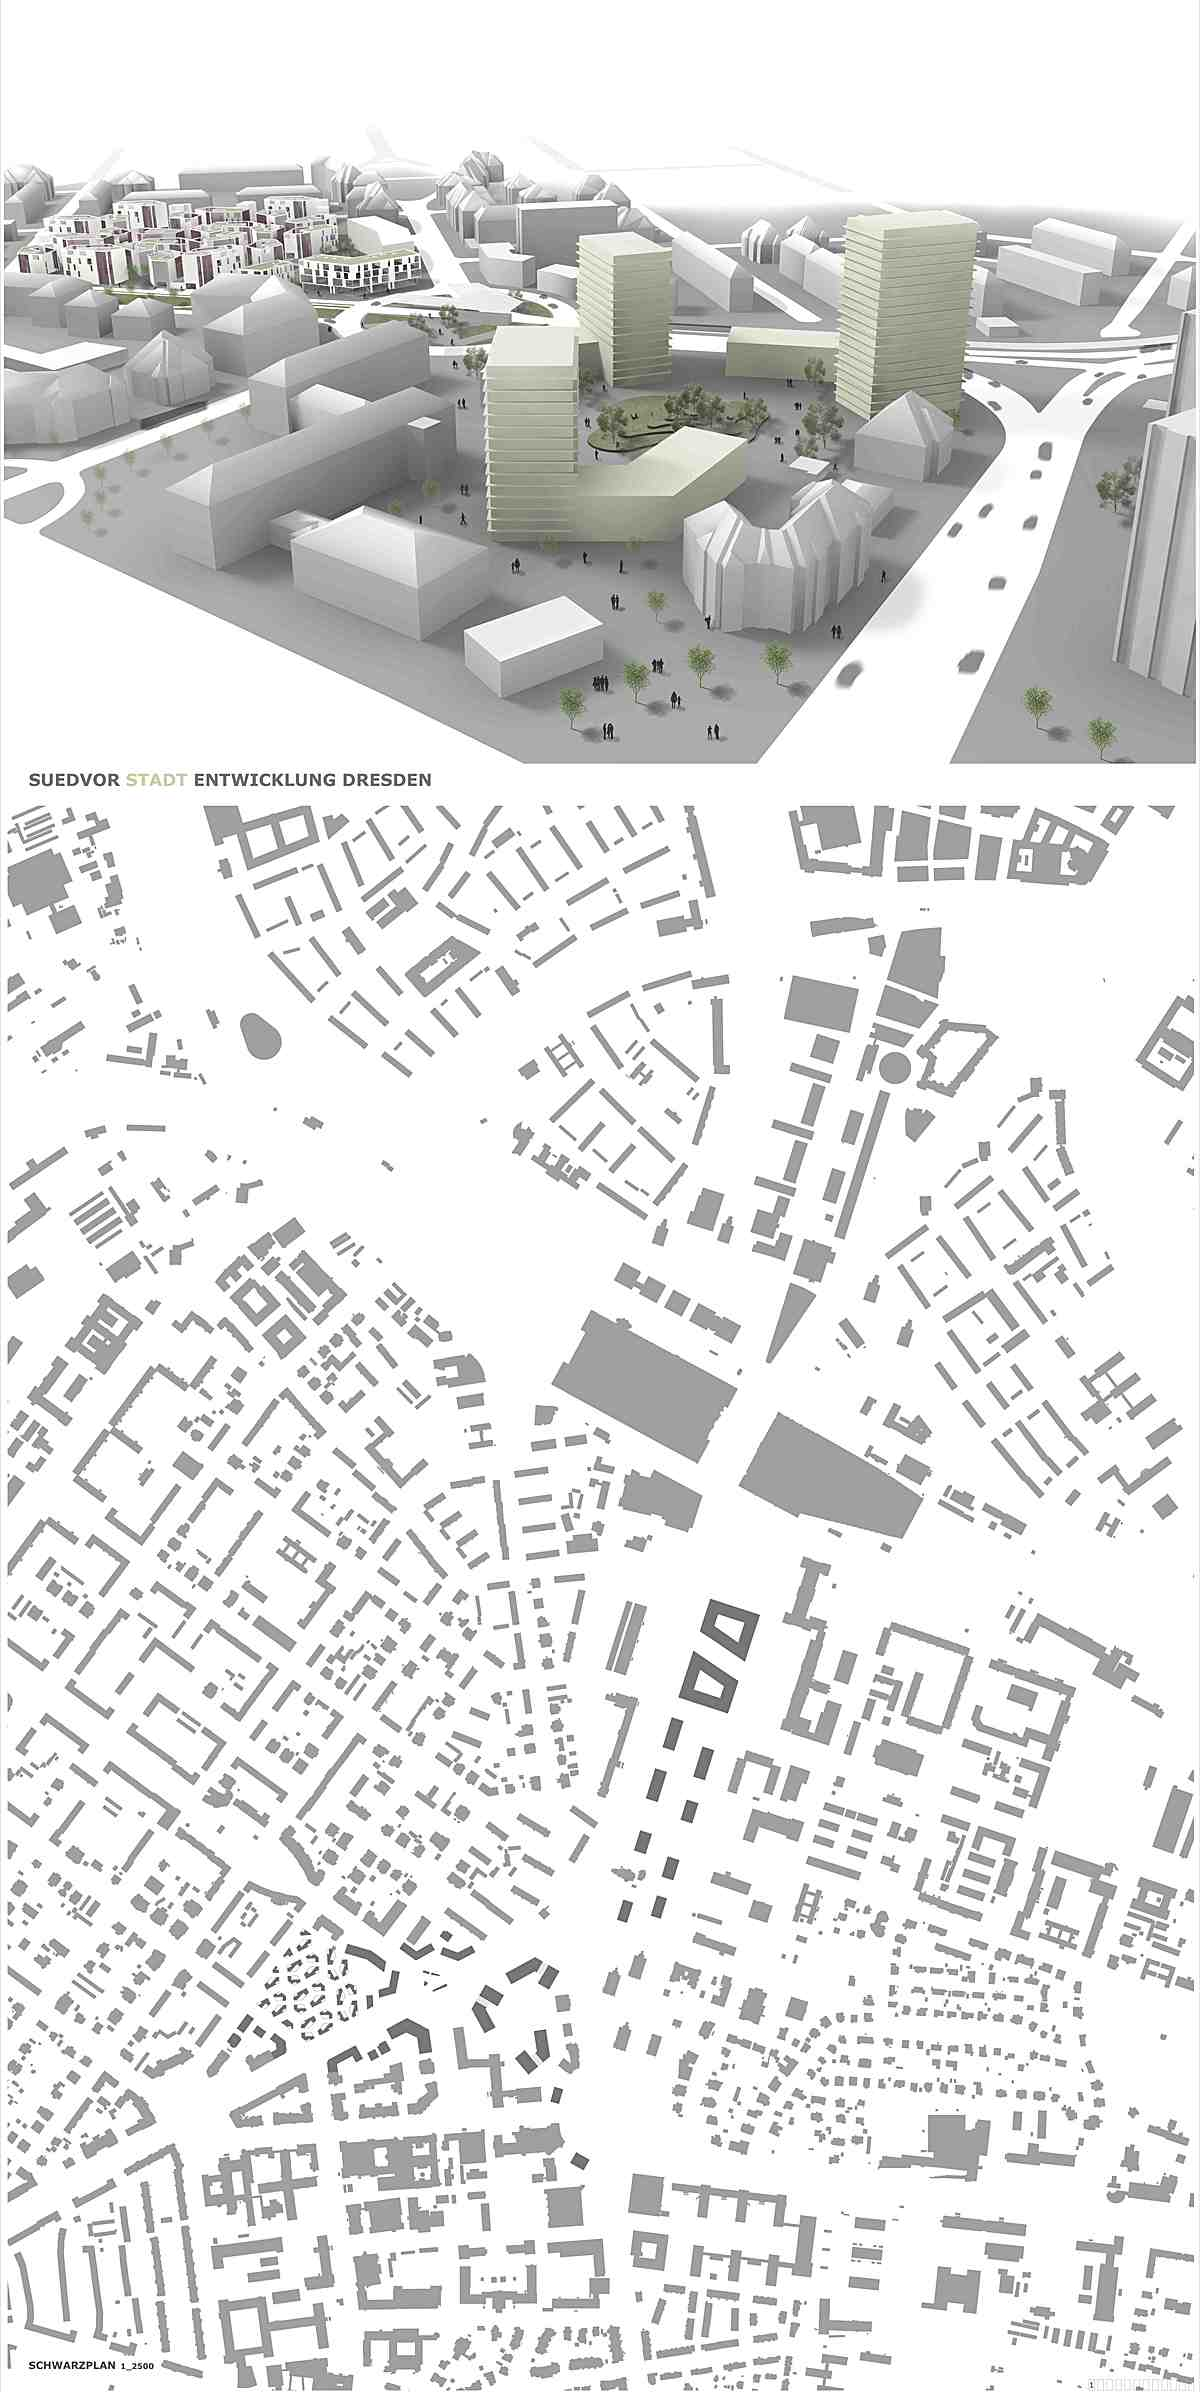 p1_urban design plan and the science gate of the city (shown in centre)